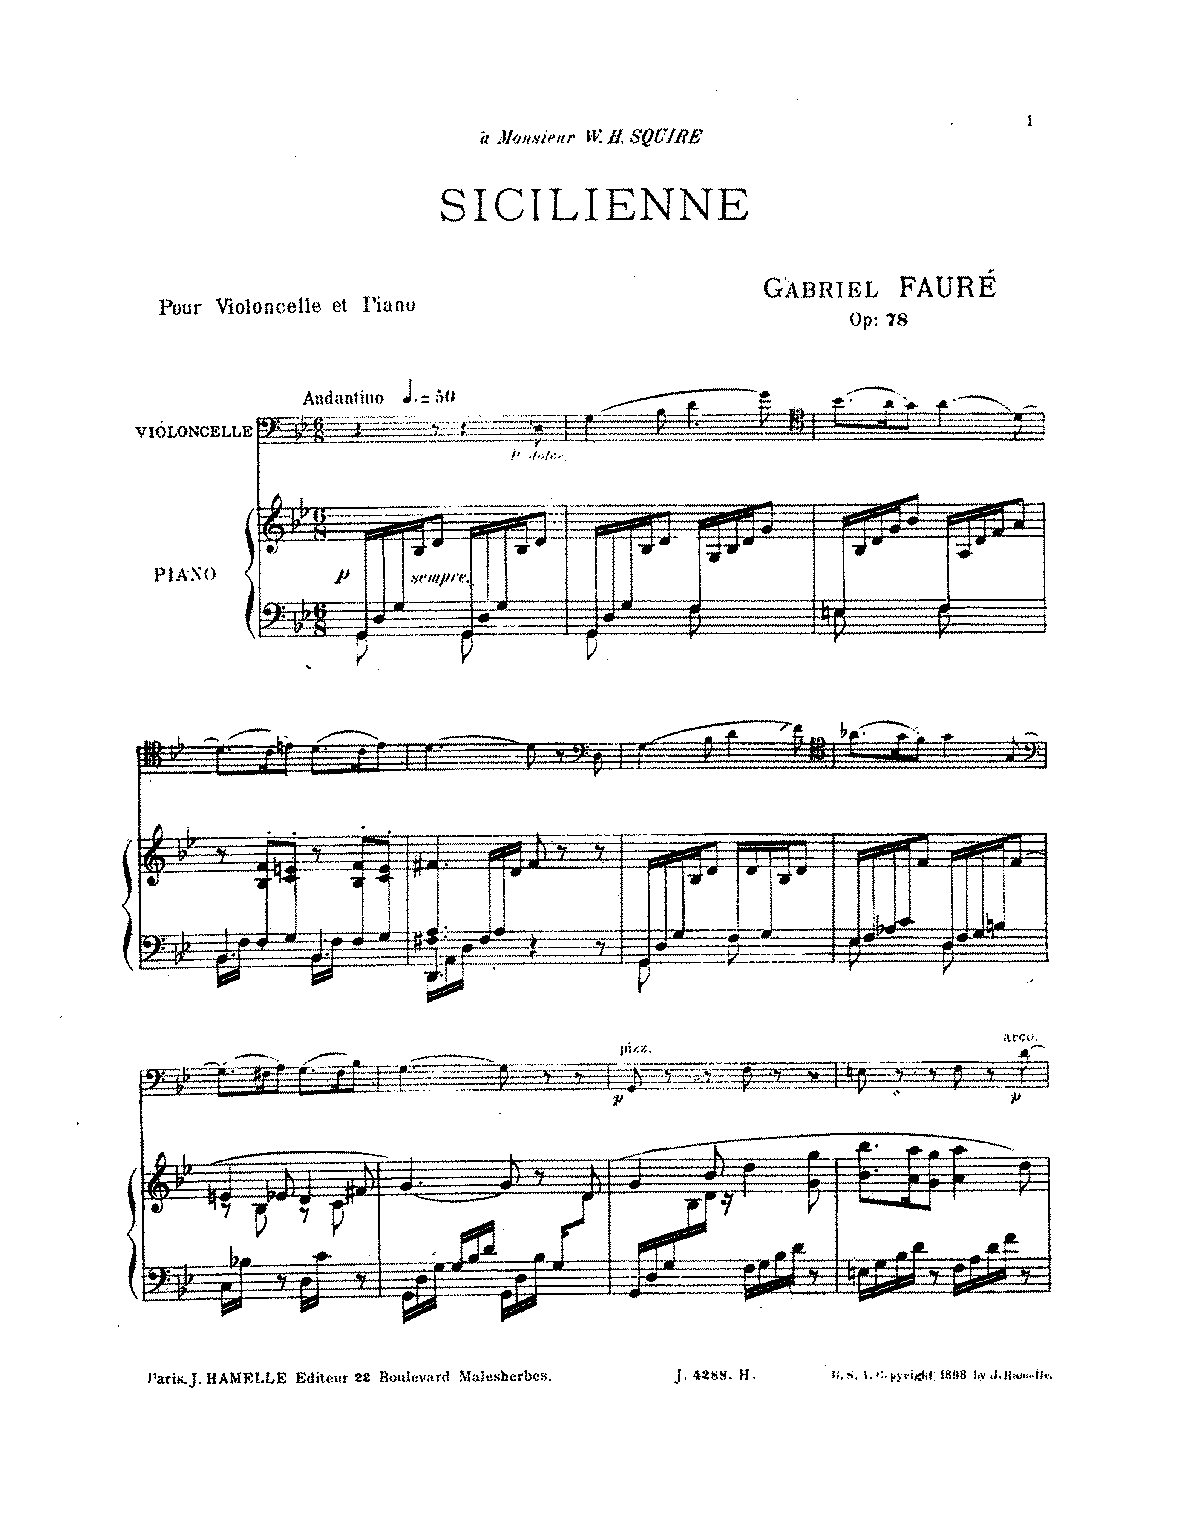 PMLP20764-Faure - Sicilienne Op.78 cello and piano (clean).pdf